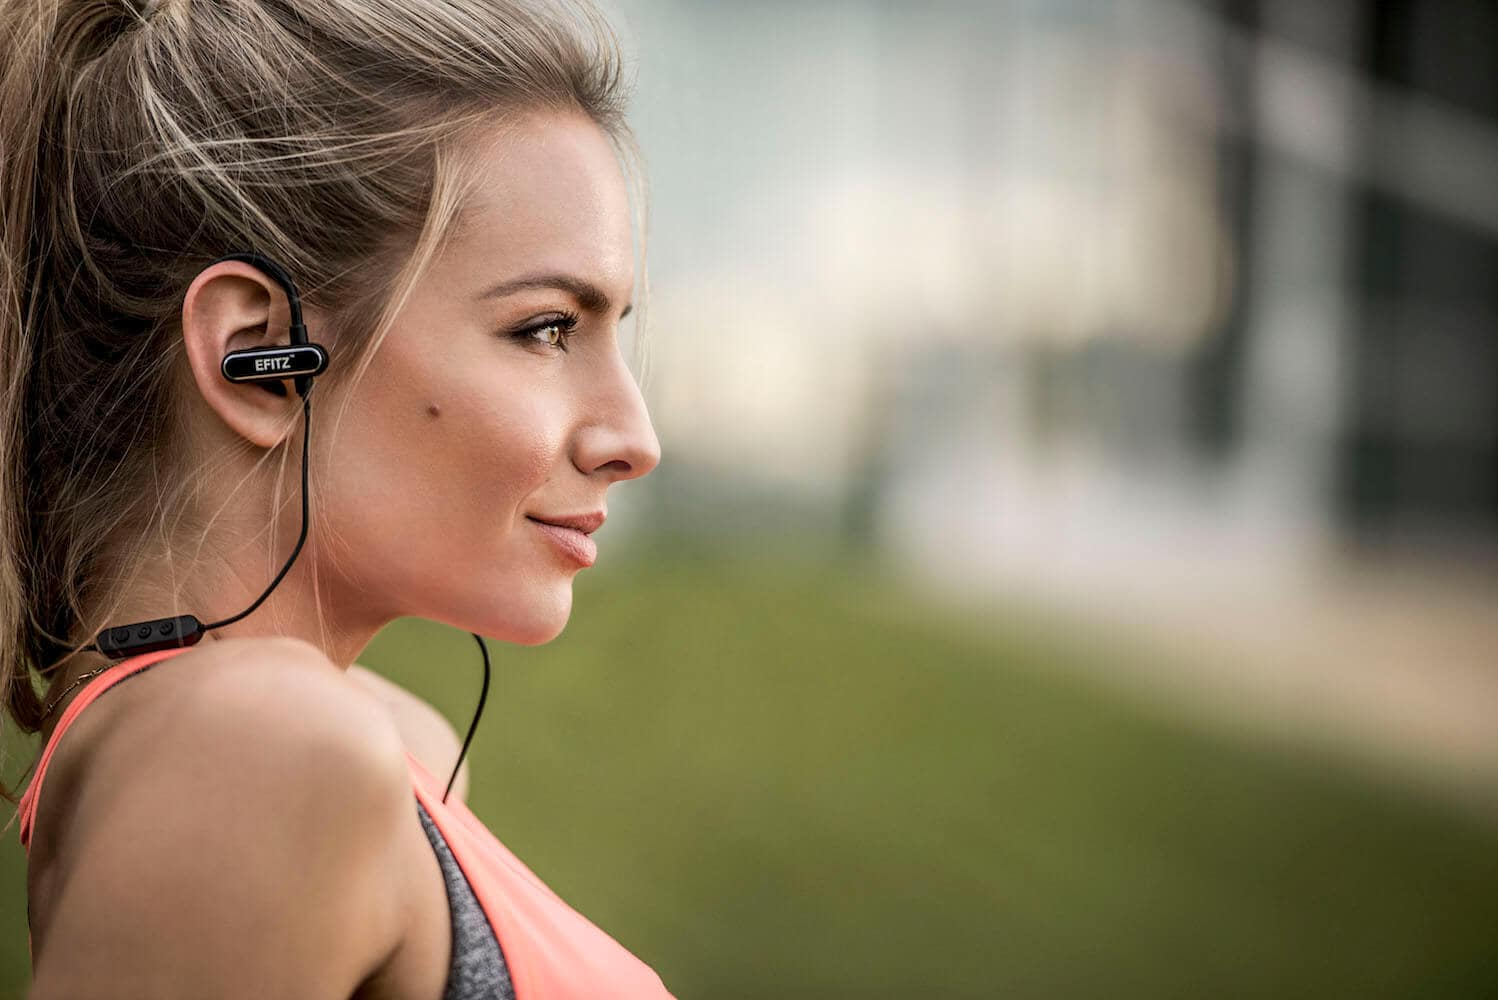 workout-wireless-headphones-efitz